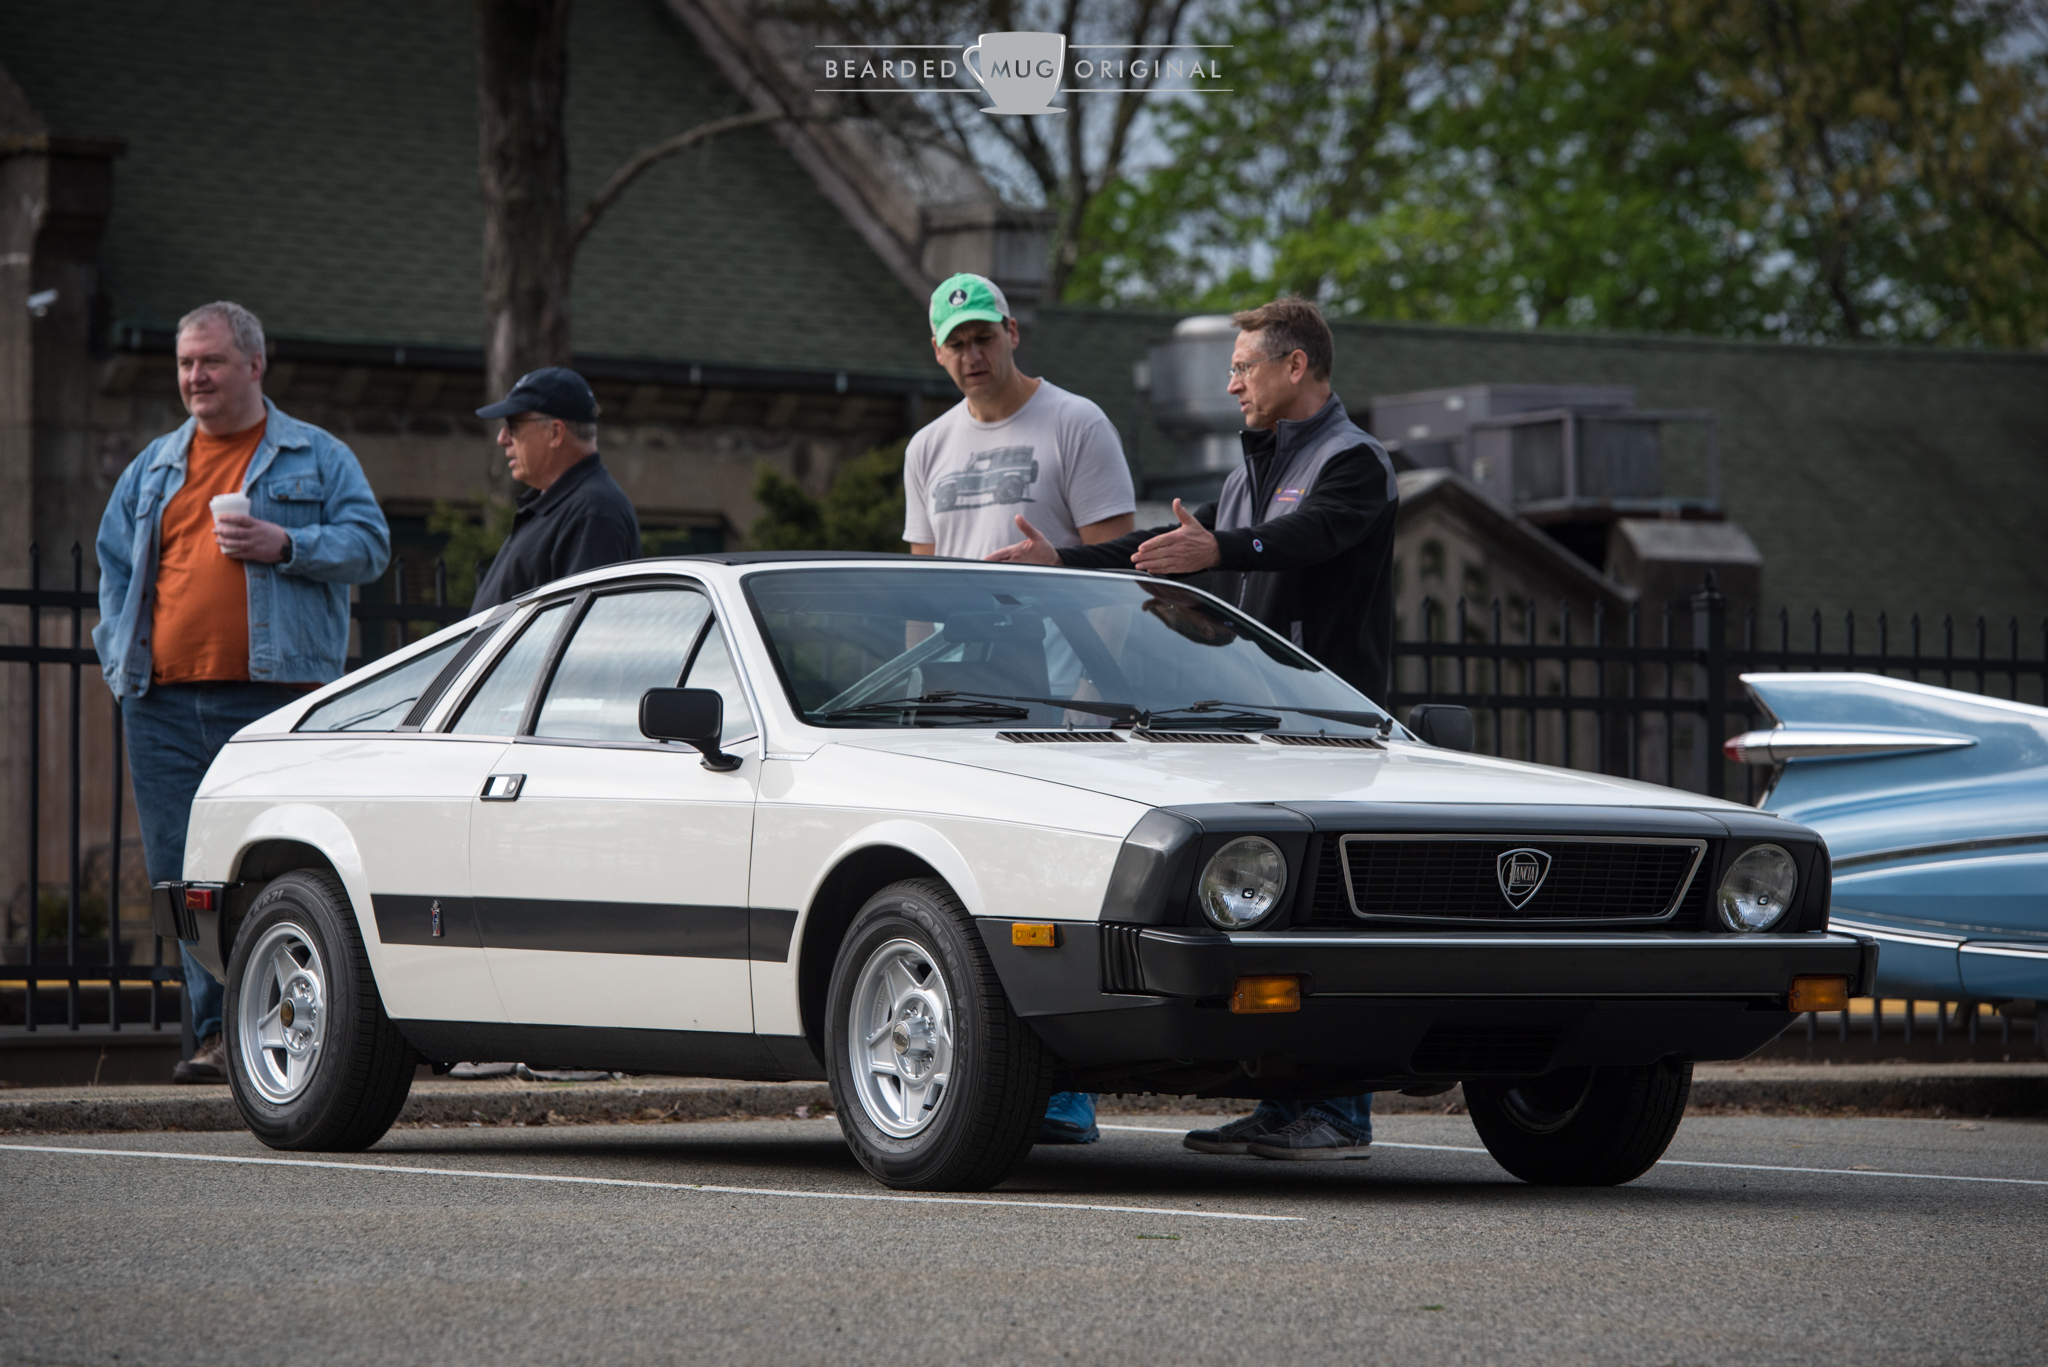 This 1977 Lancia Scorpion was the sole Italian classic in attendance, and it arrived and left under its own power.